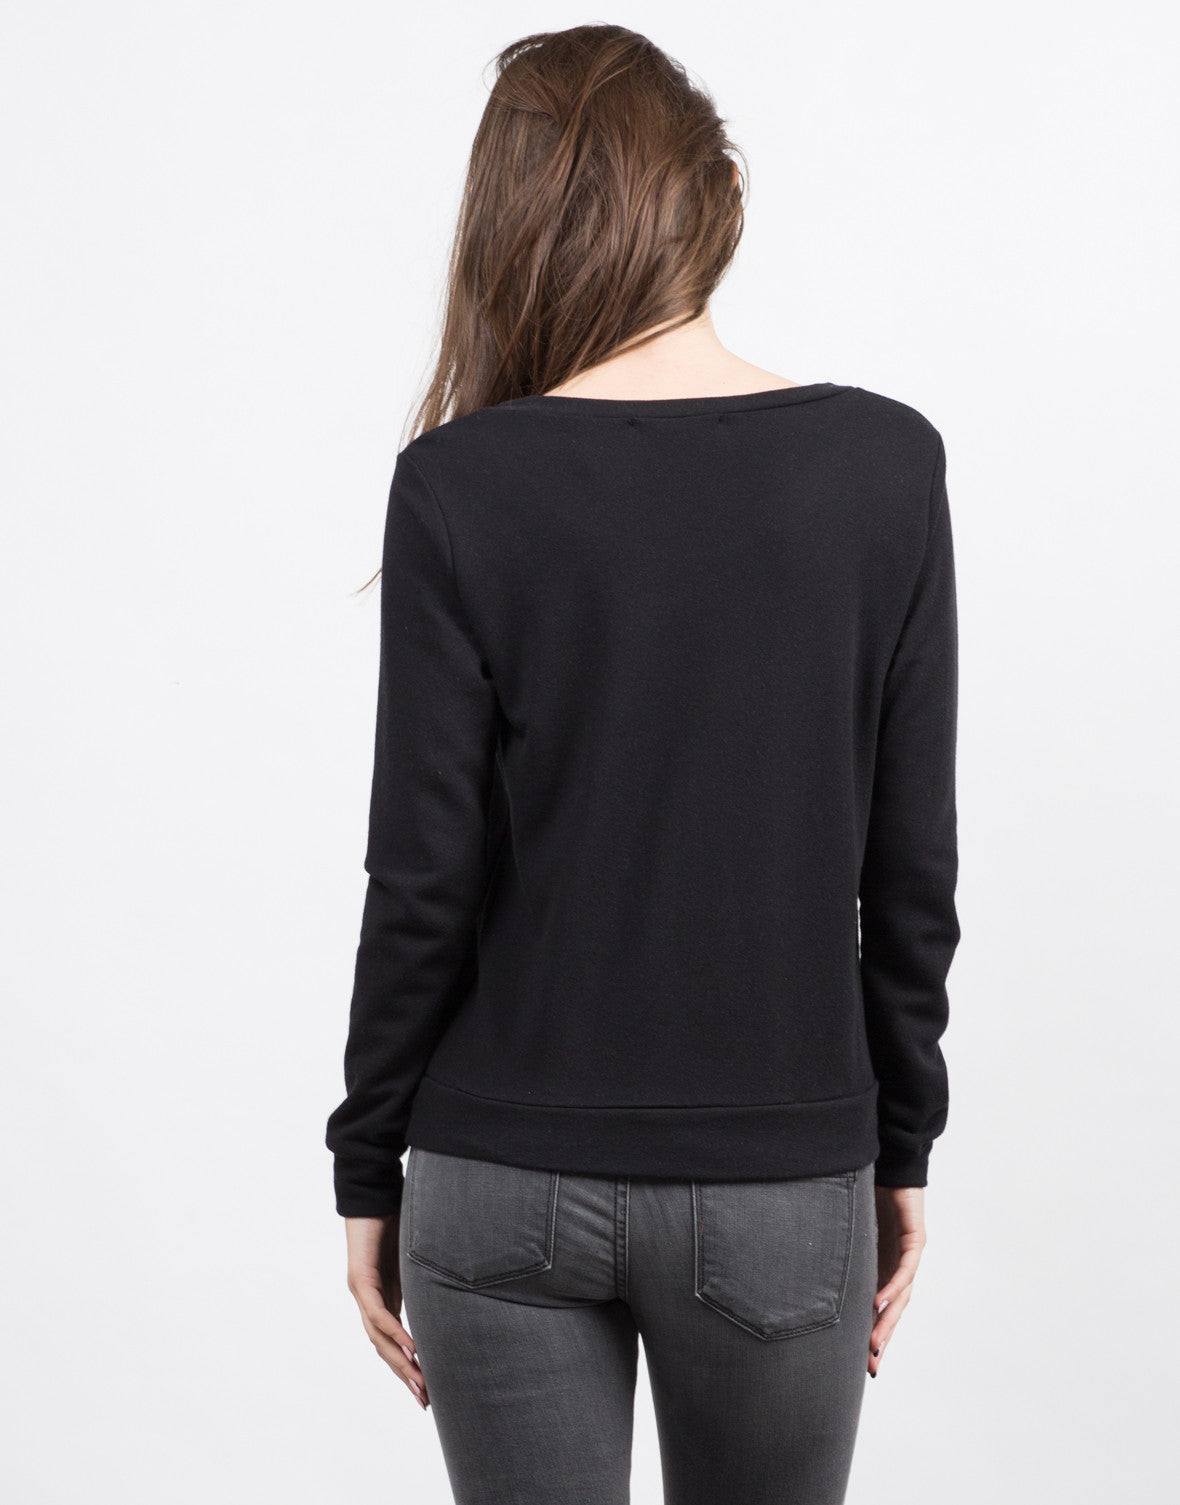 Back View of Soho Sweatshirt